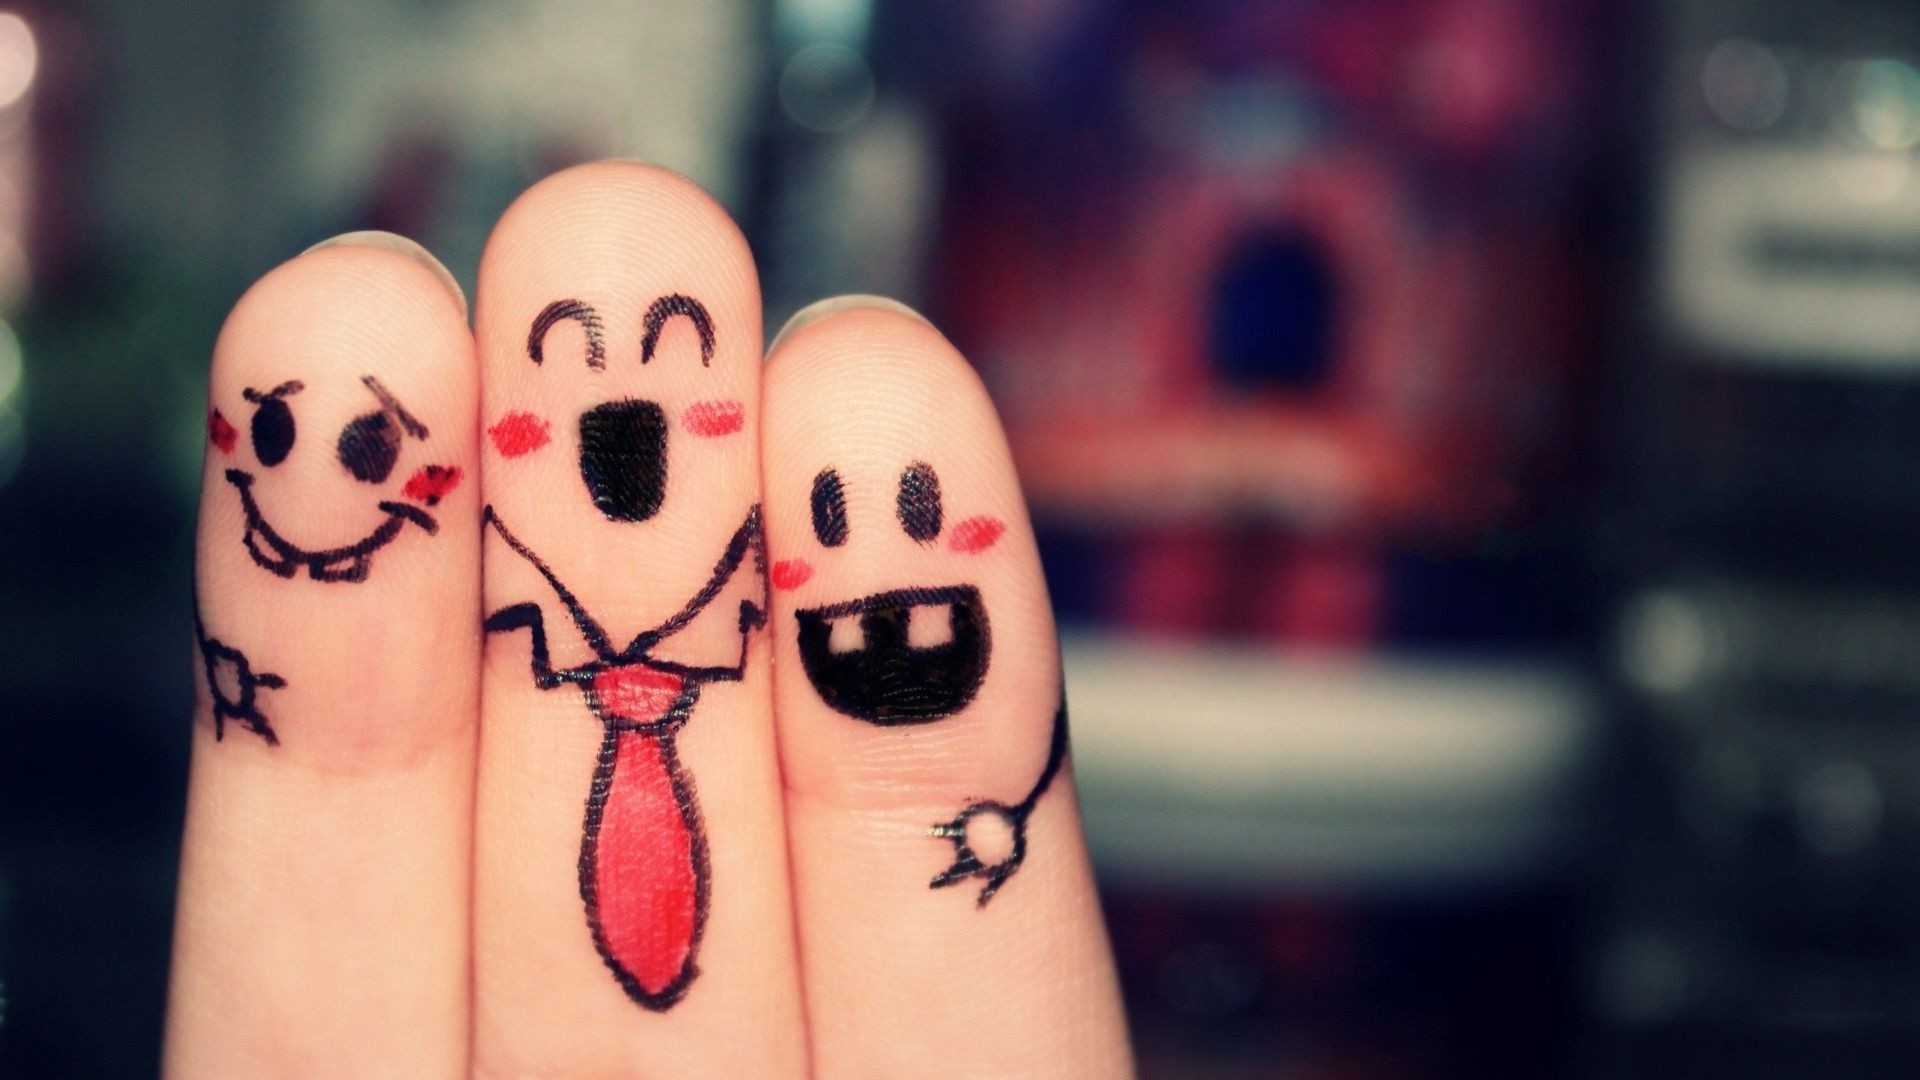 Best Friend Wallpapers (71+ Images